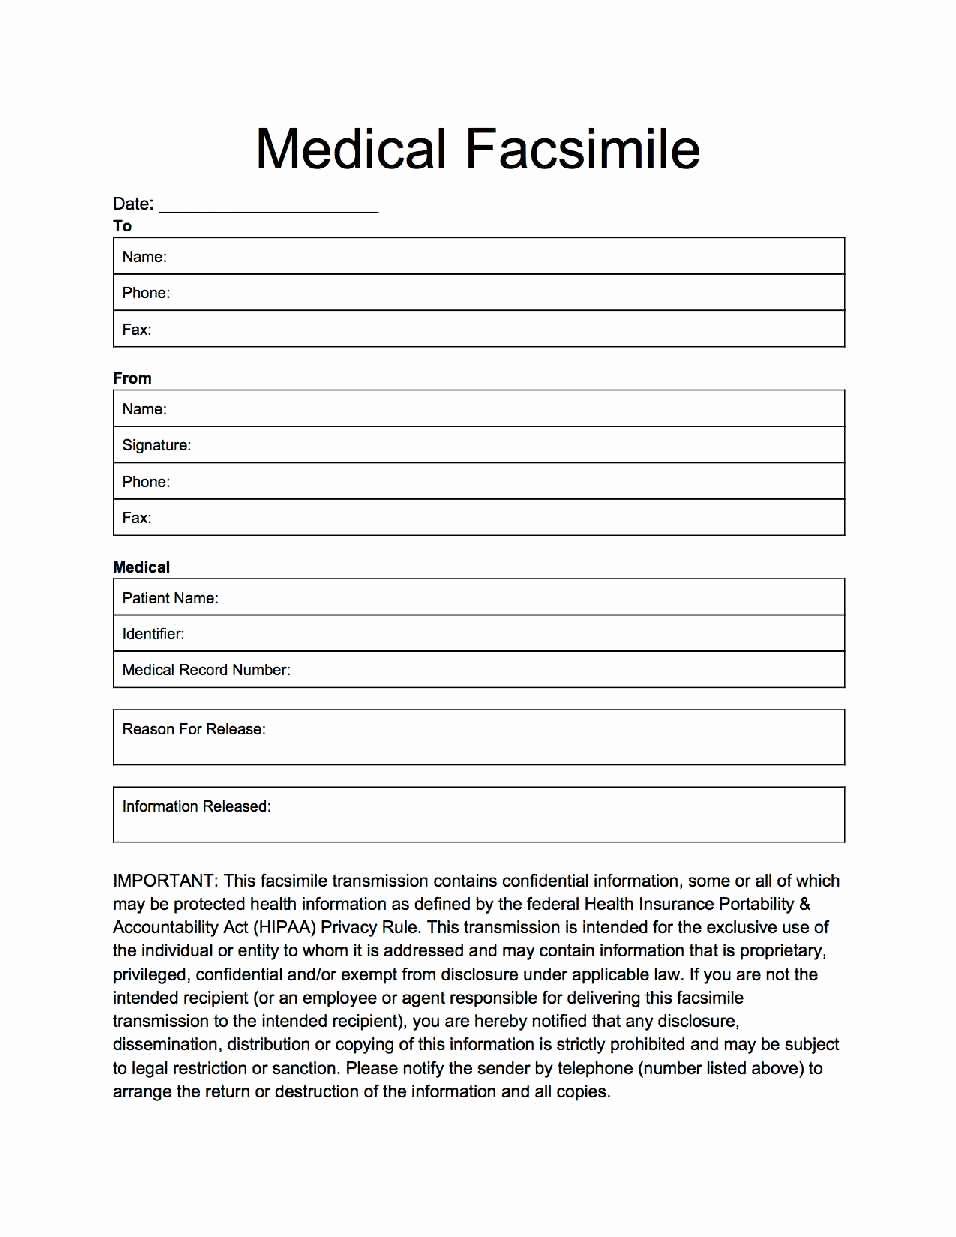 Medical Office Fax Cover Sheet Best Of Printable Fax Cover Sheet Medical Best Ideas Of Printable